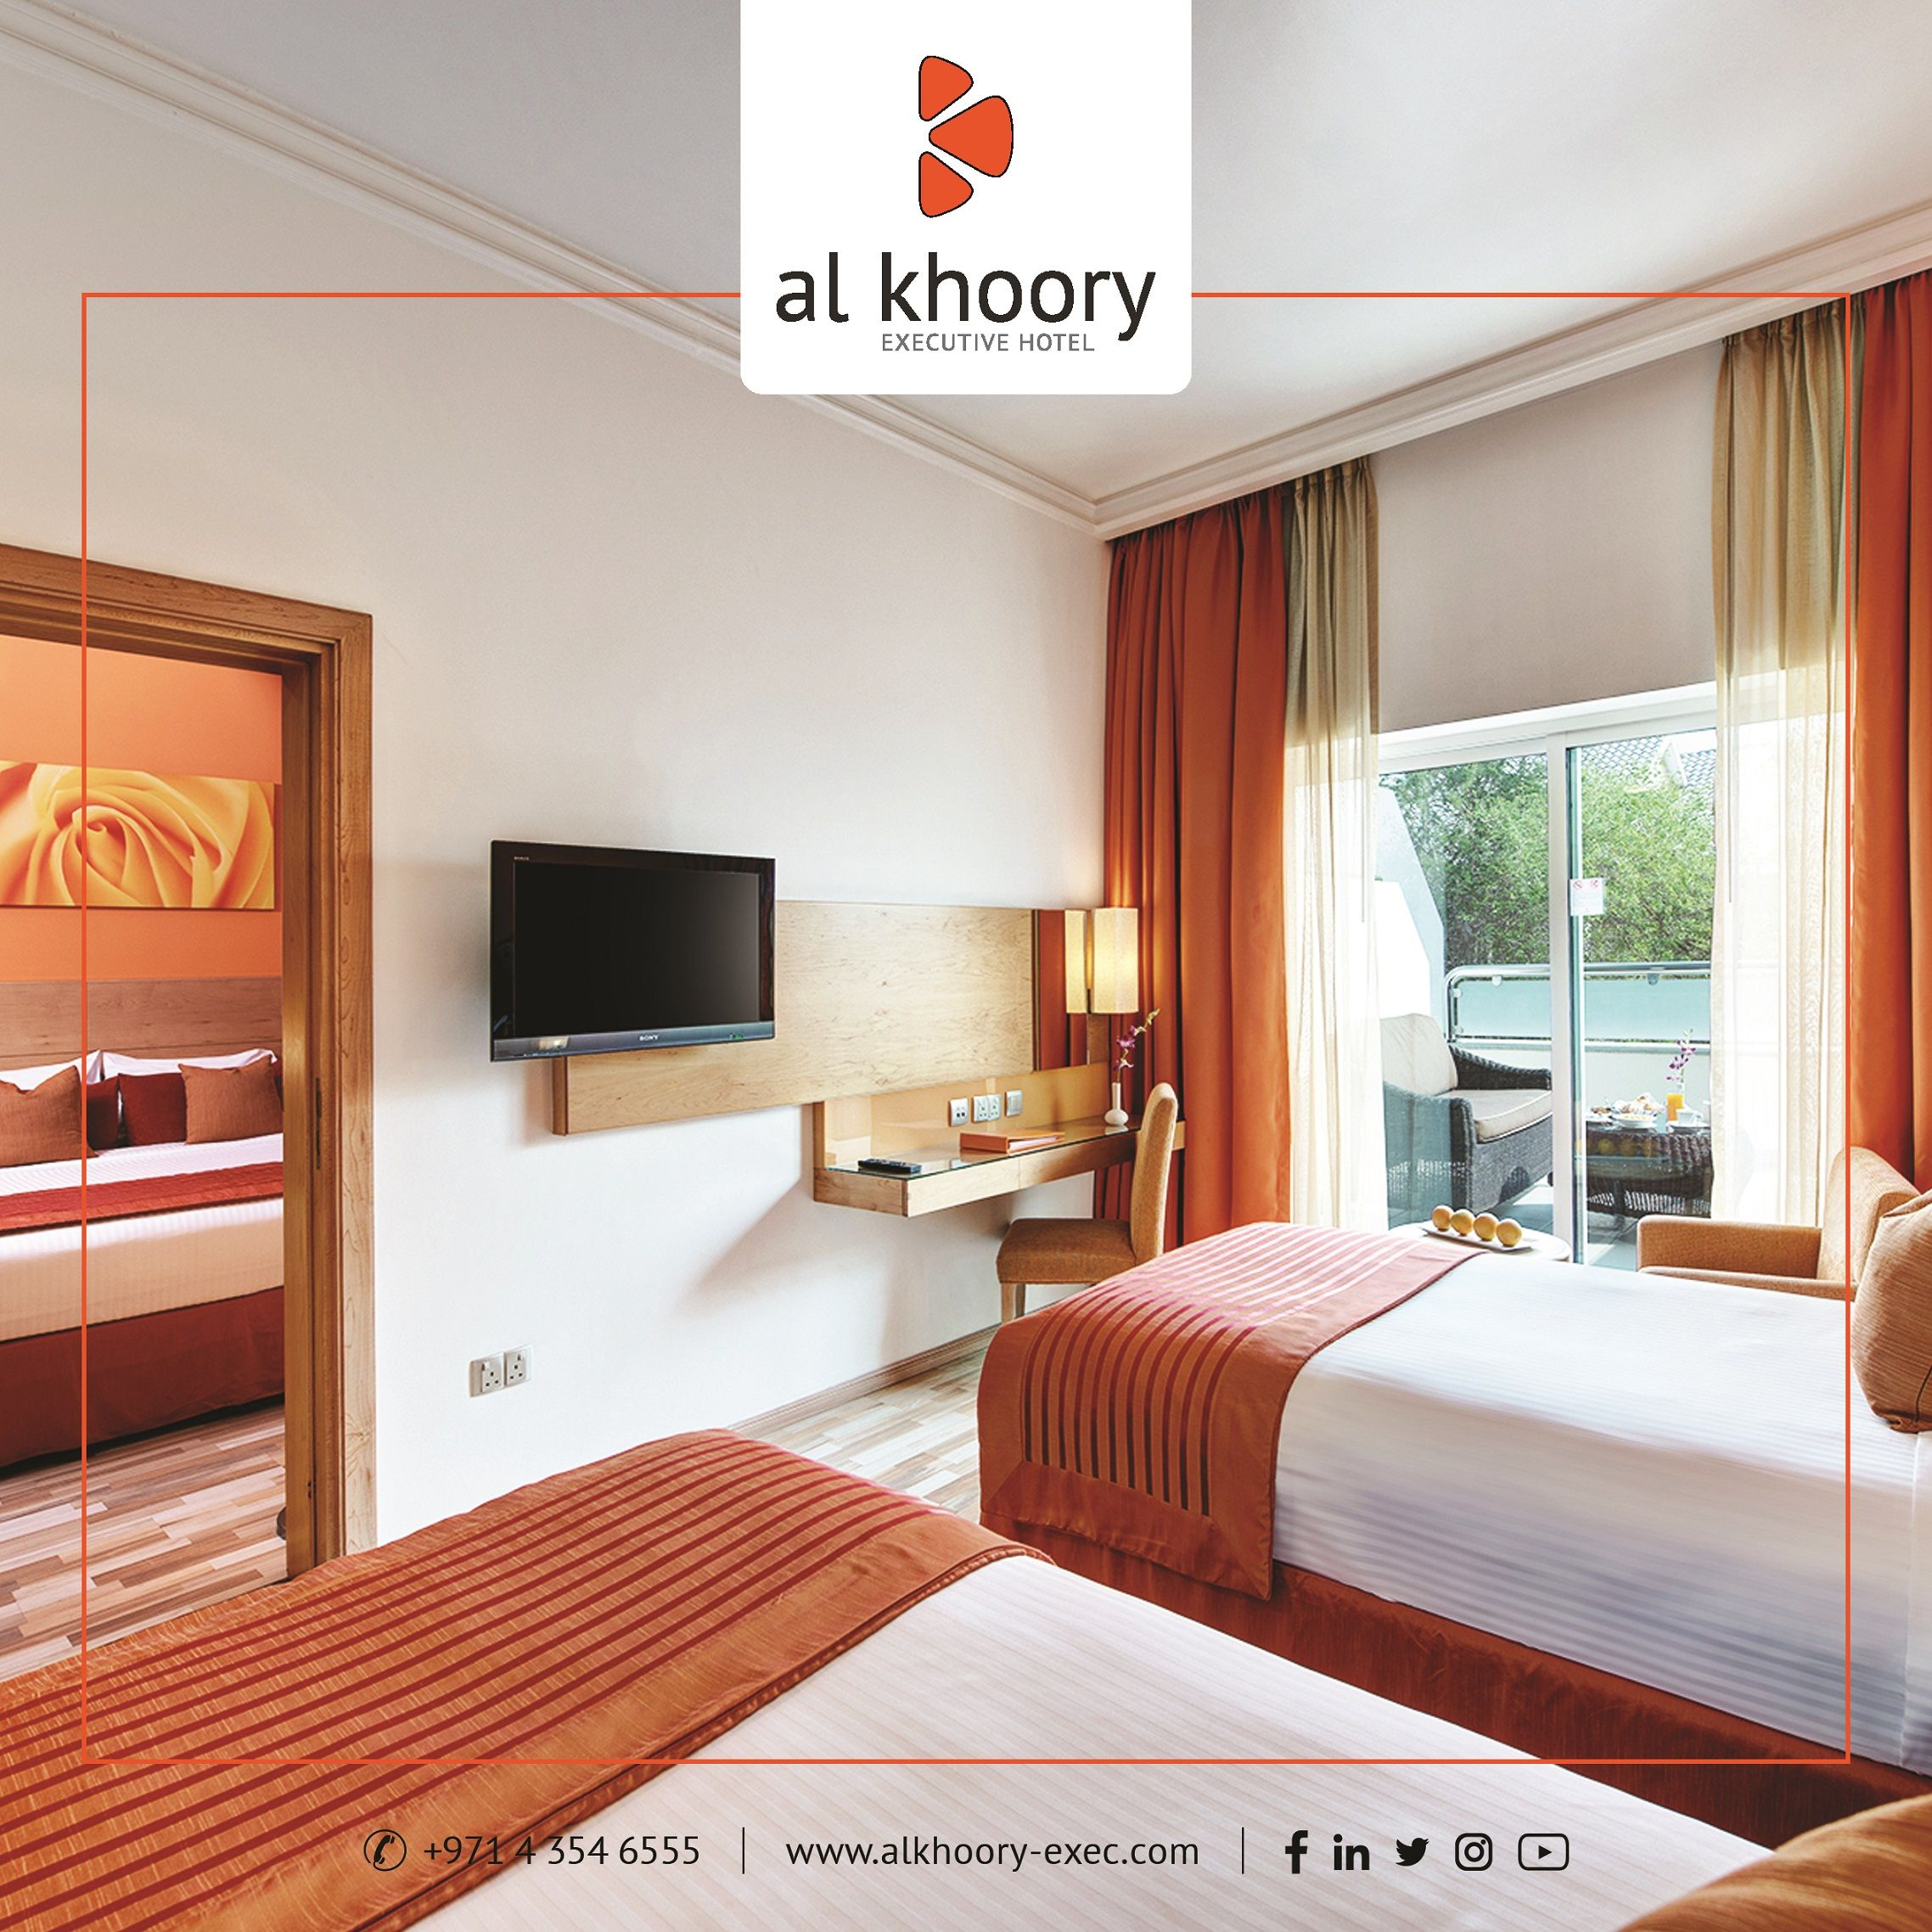 Interconnecting Rooms at Al Khoory Executive Hotel in 2020